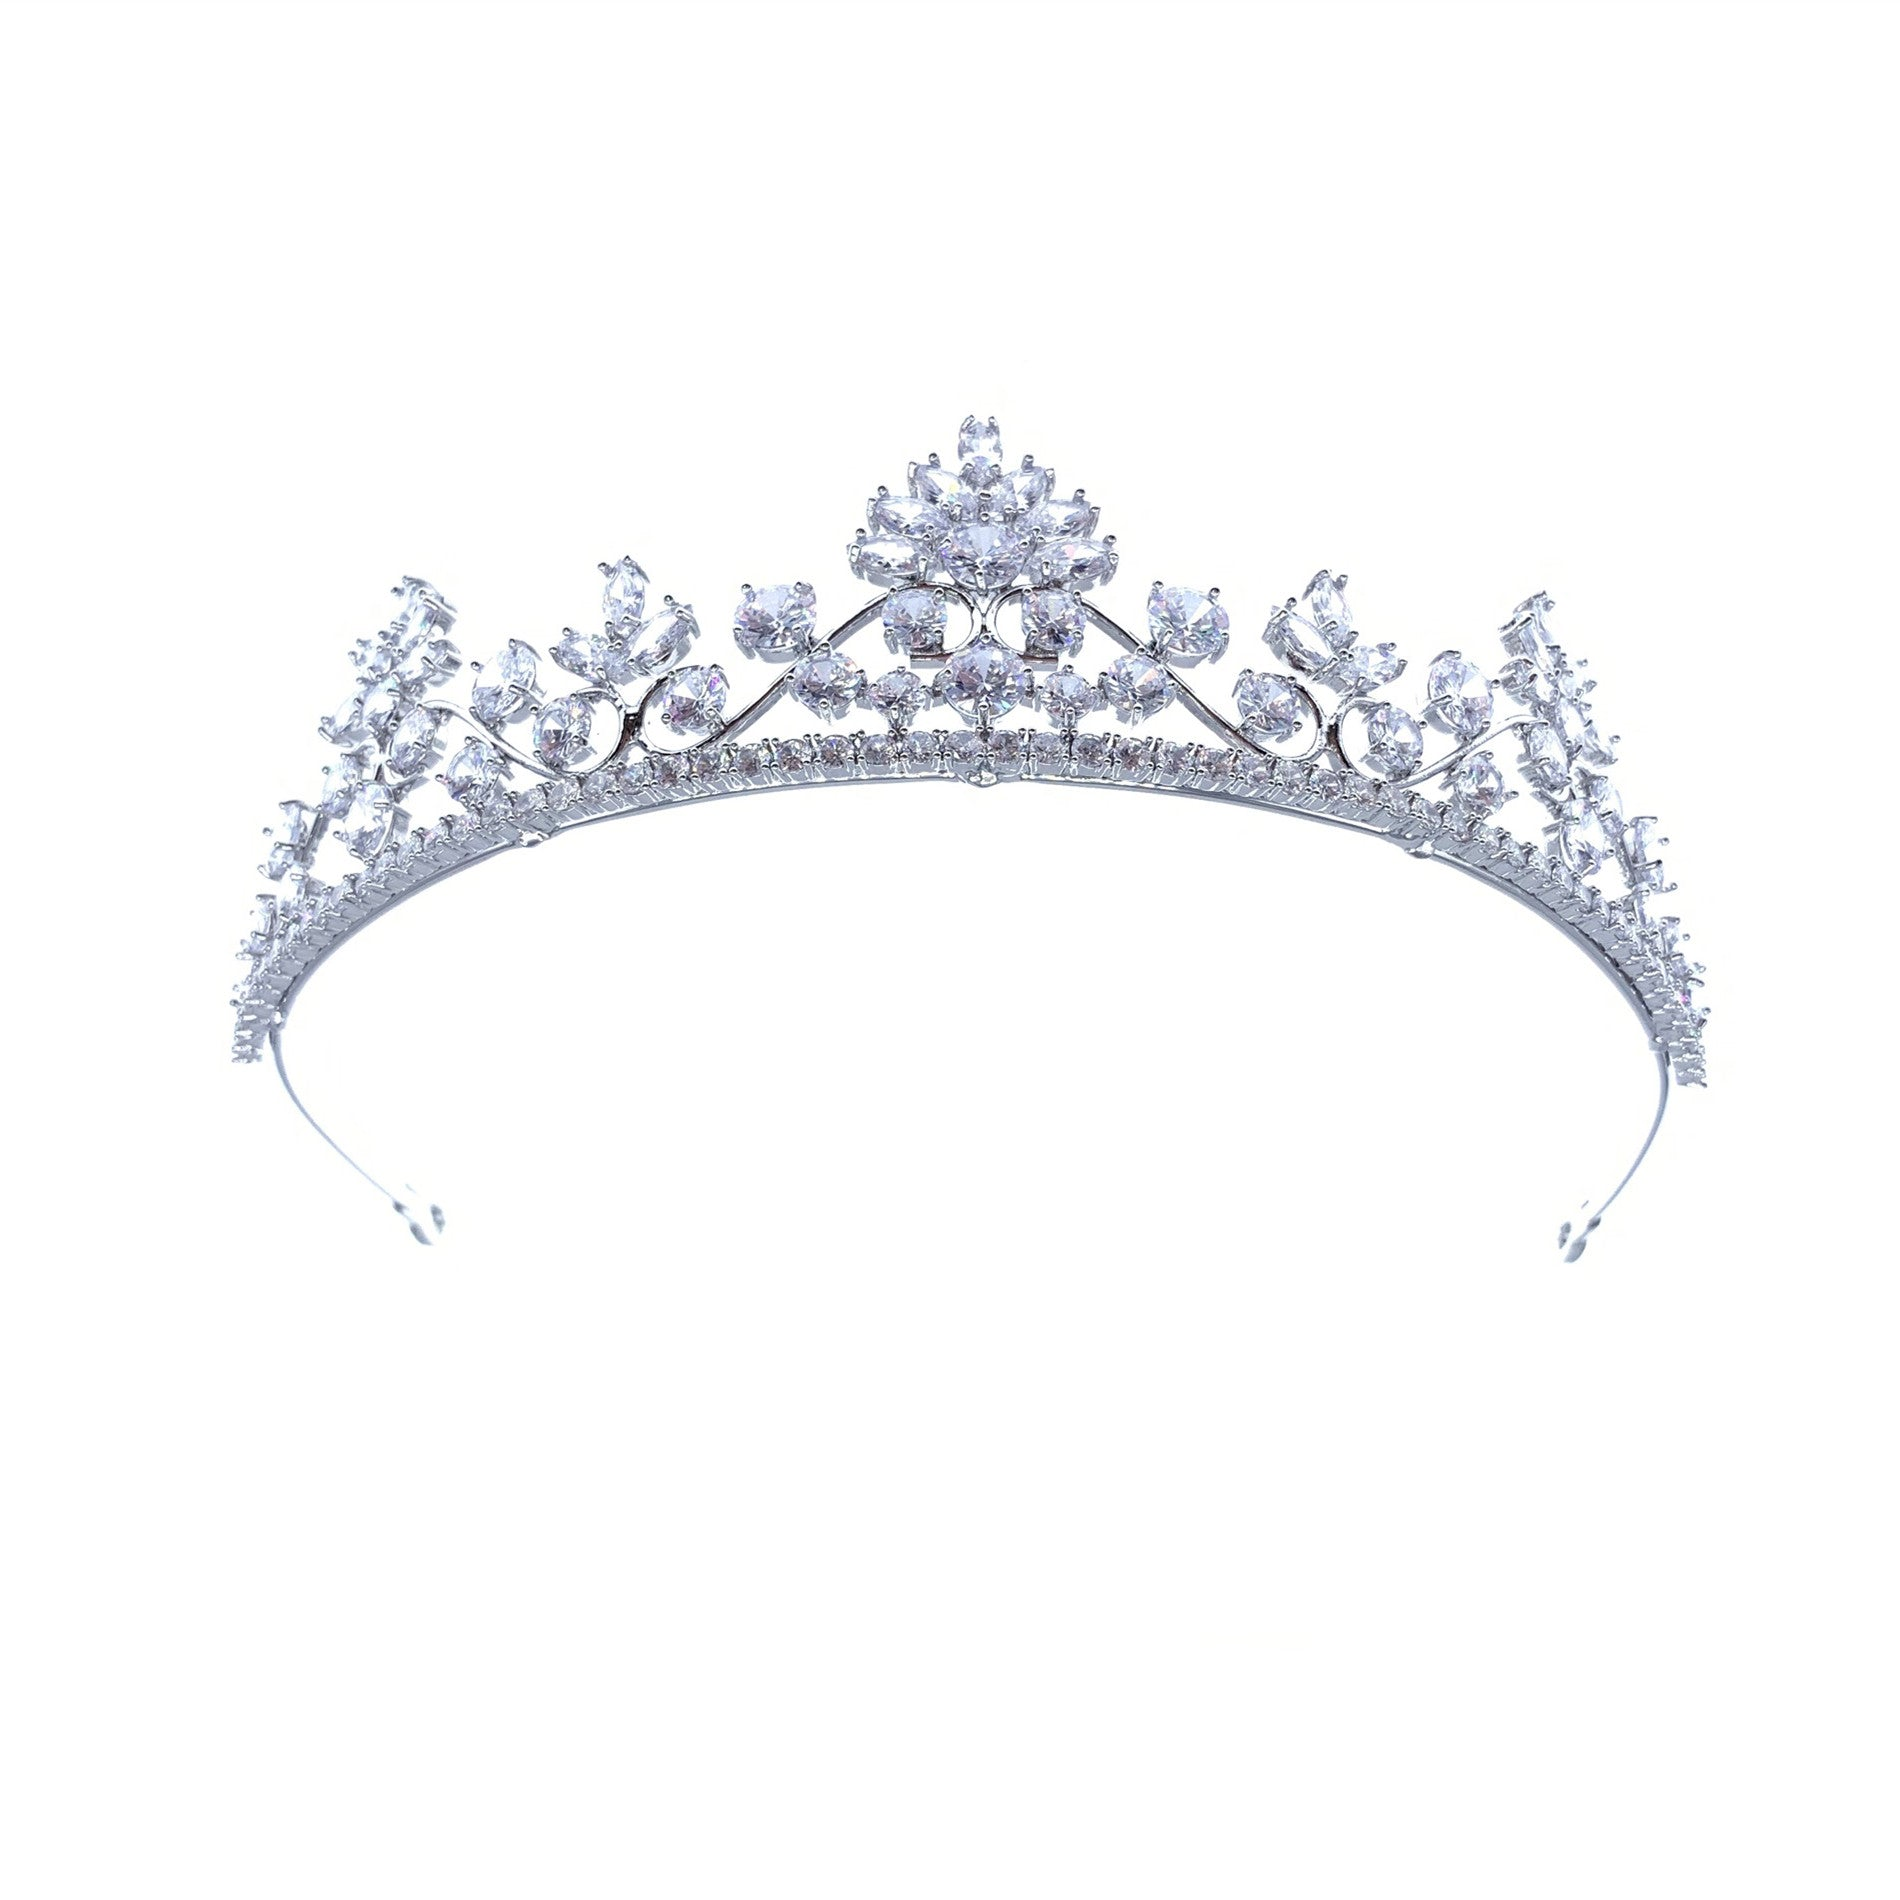 'Princess Louise' Duchess of Argyll Tiara - The Royal Look For Less